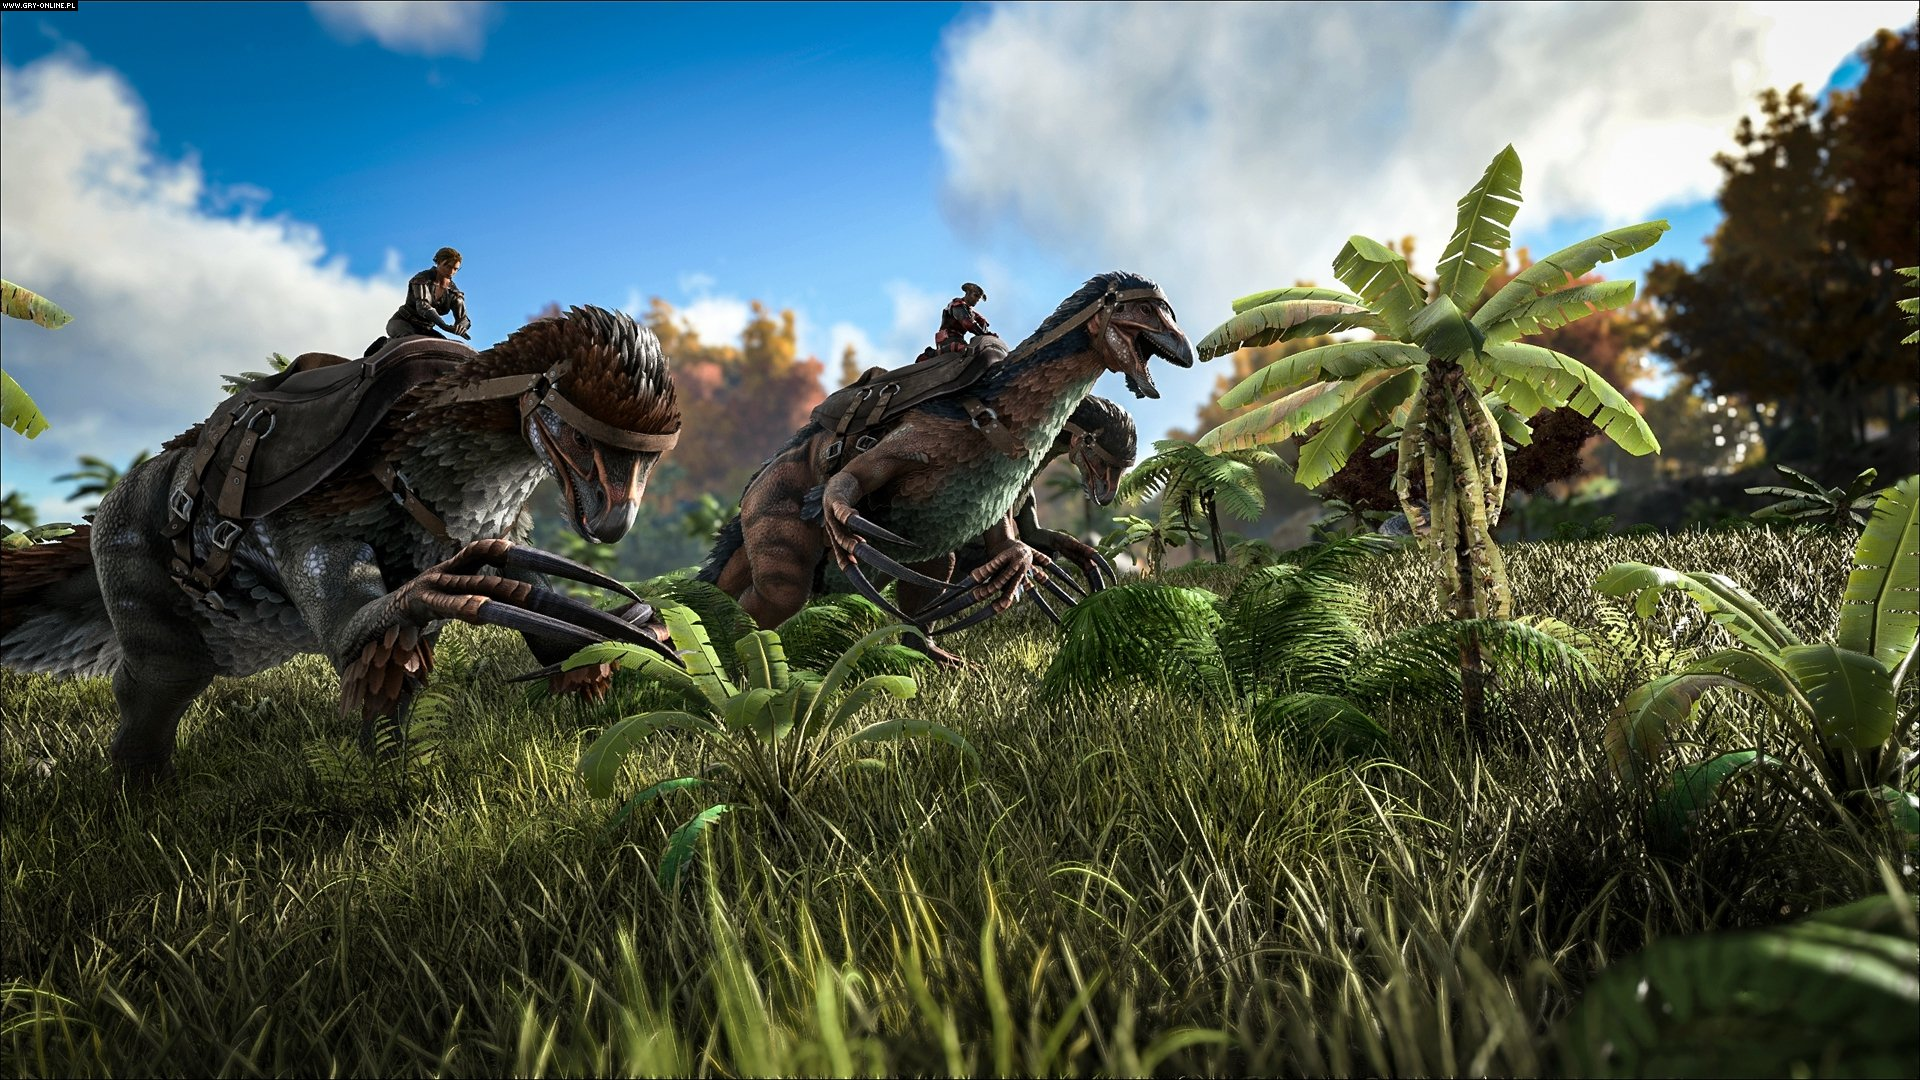 ARK: Survival Evolved PC, PS4, XONE, Switch Gry Screen 73/148, Studio Wildcard